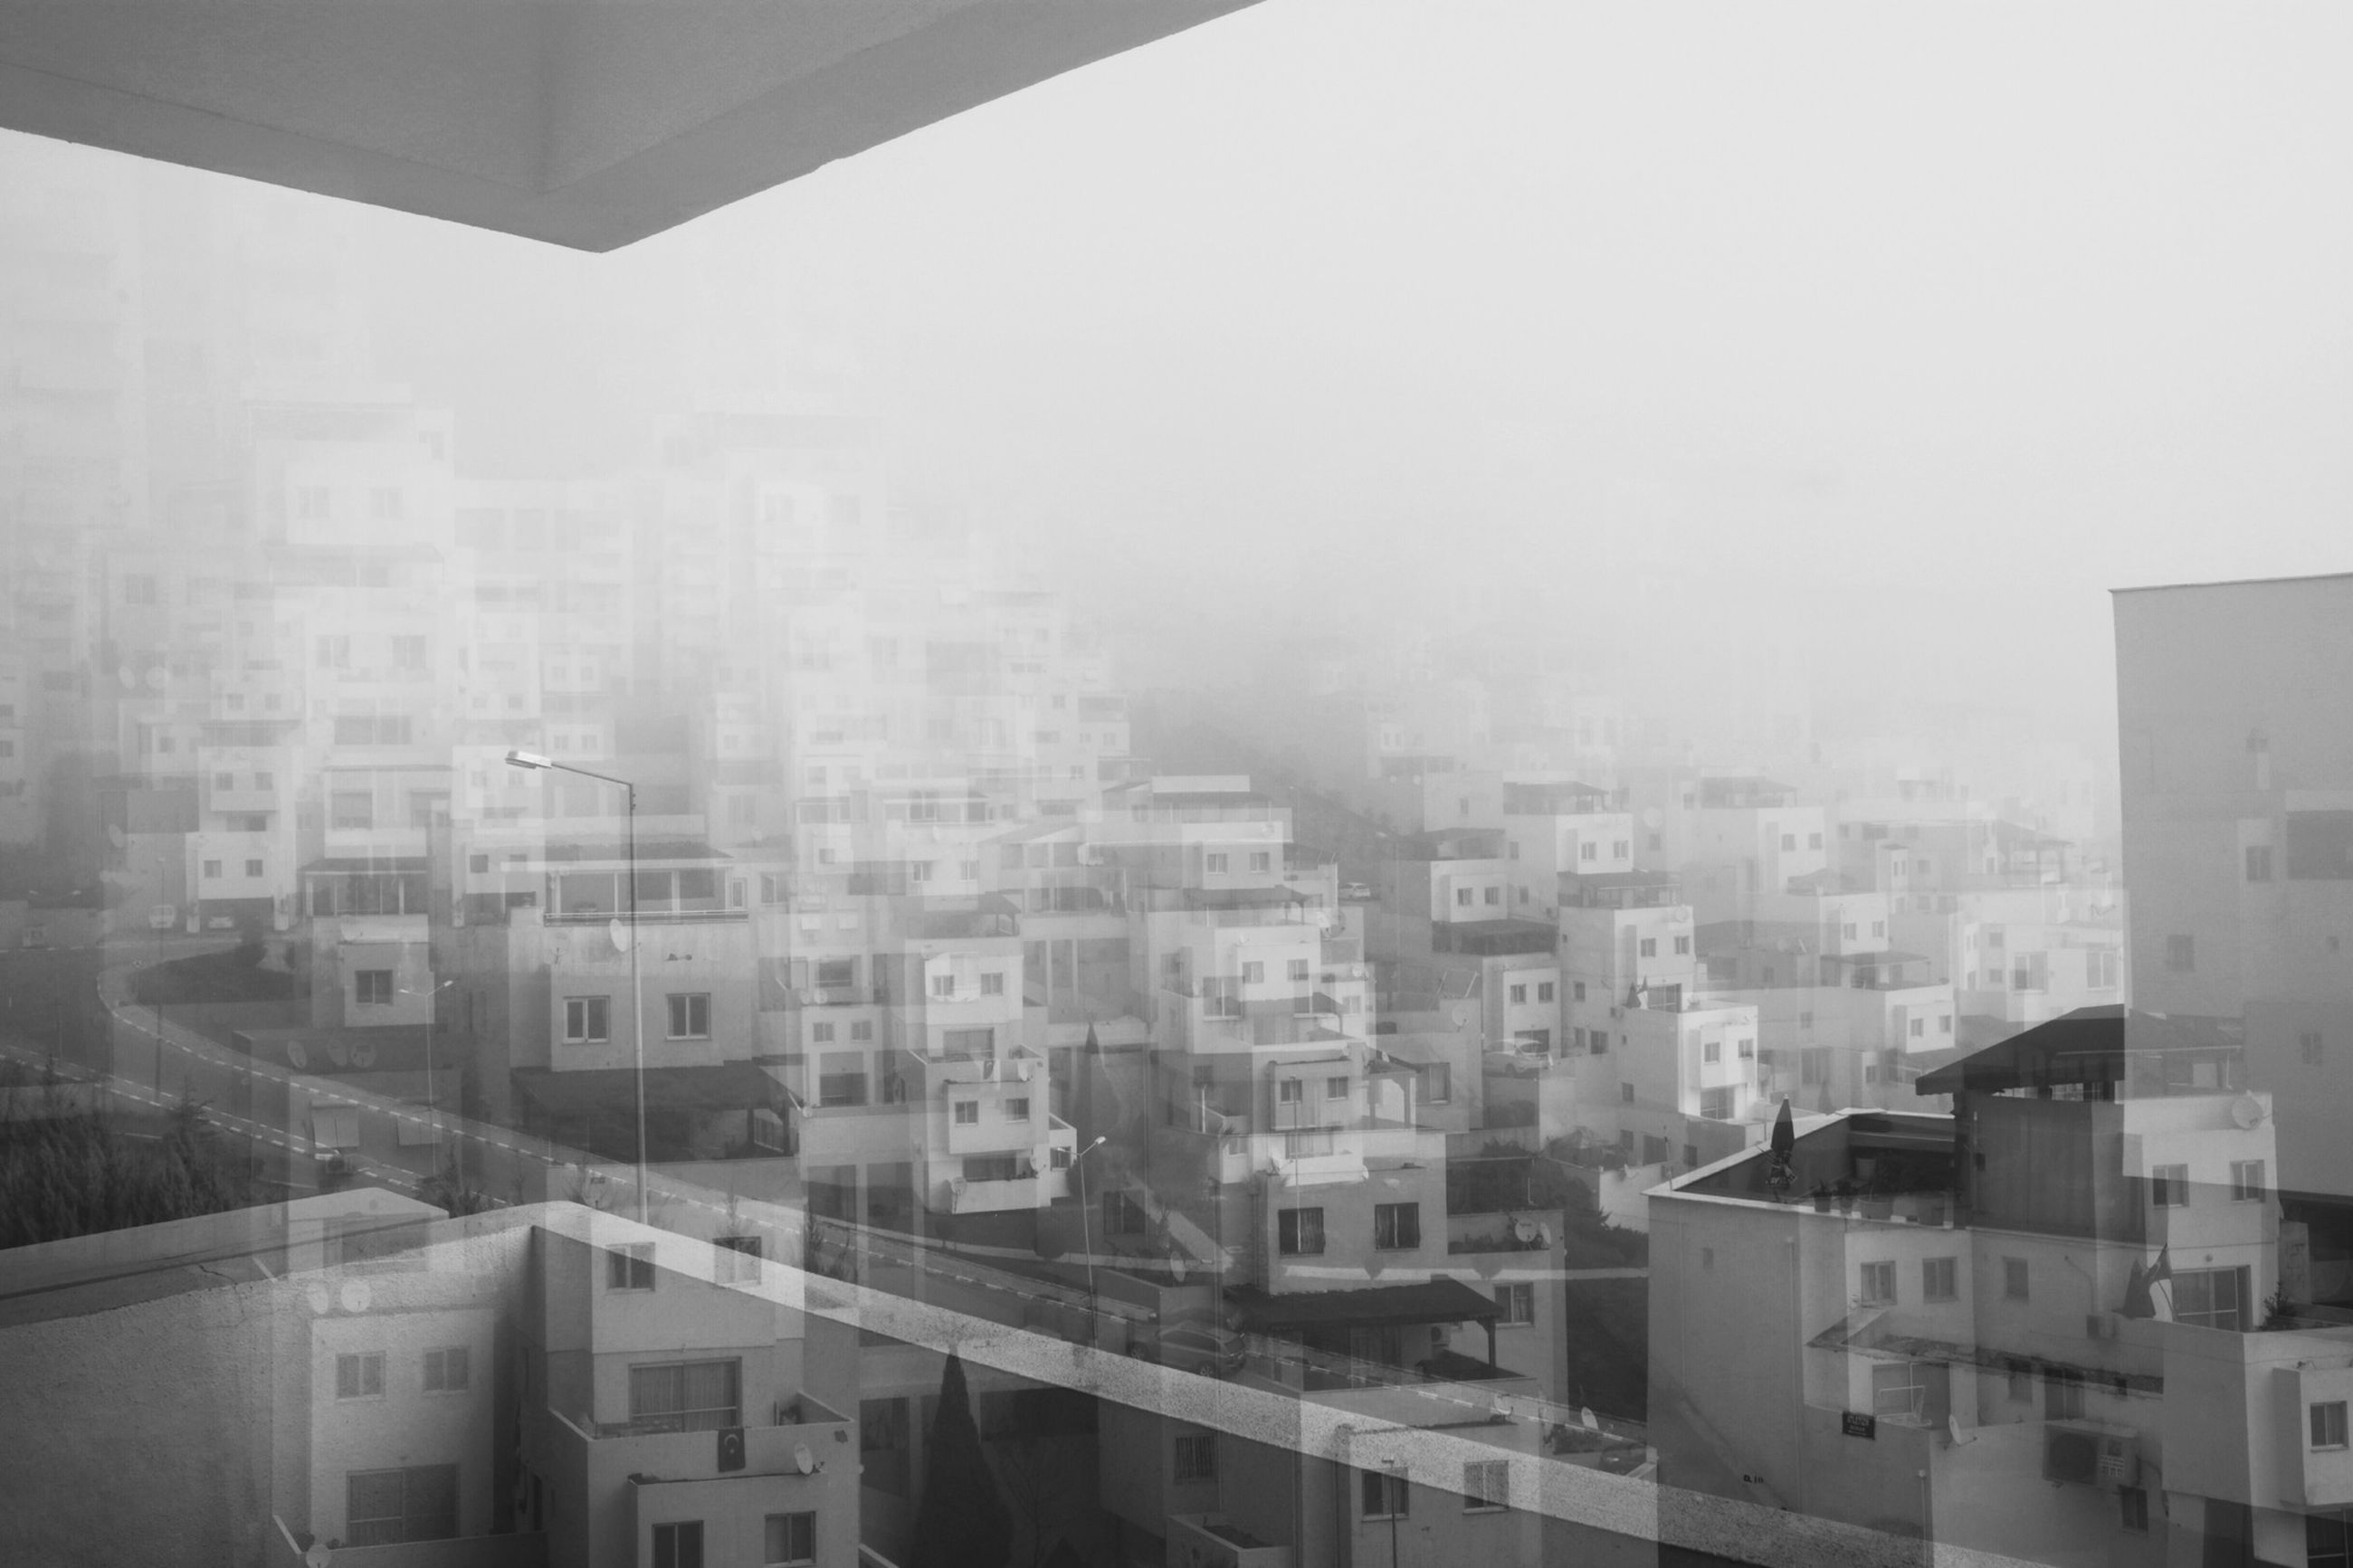 architecture, building exterior, built structure, city, clear sky, cityscape, residential building, residential structure, residential district, copy space, building, high angle view, day, sky, foggy, city life, window, crowded, no people